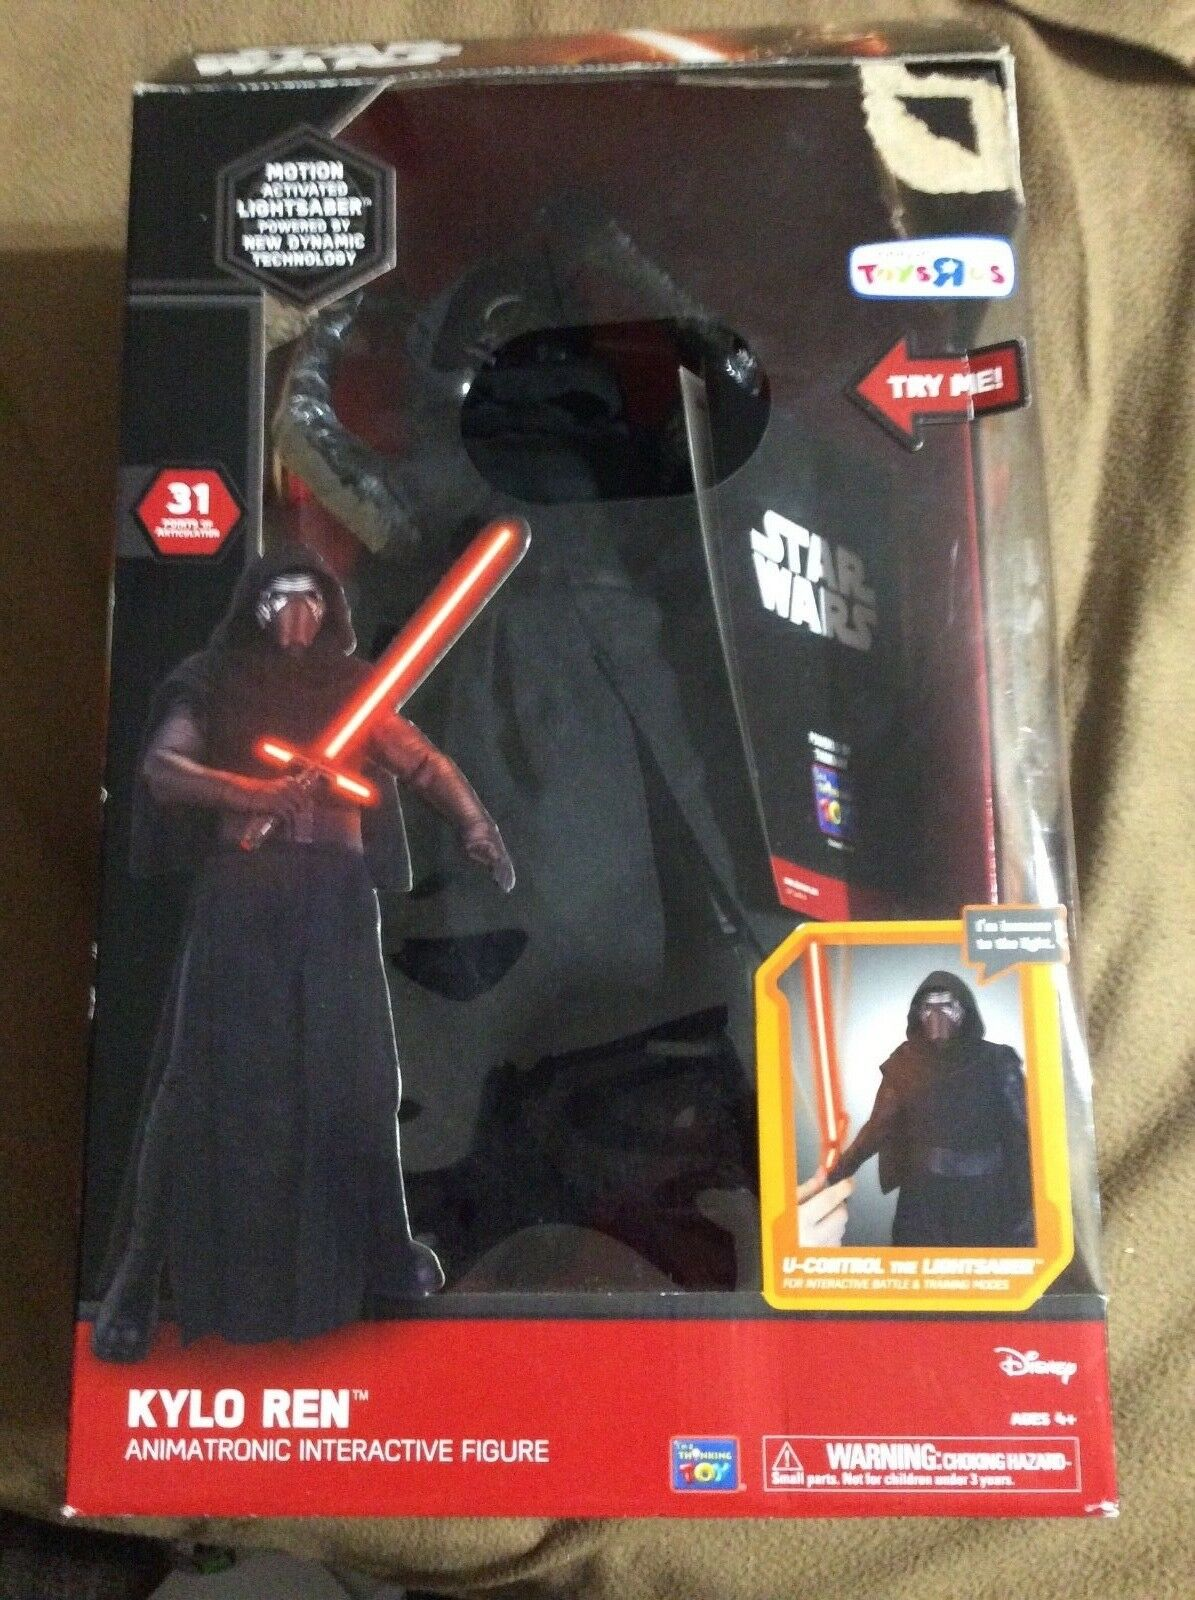 Star Wars Kylo REN Animatronic interactive figure over 14 inches tall